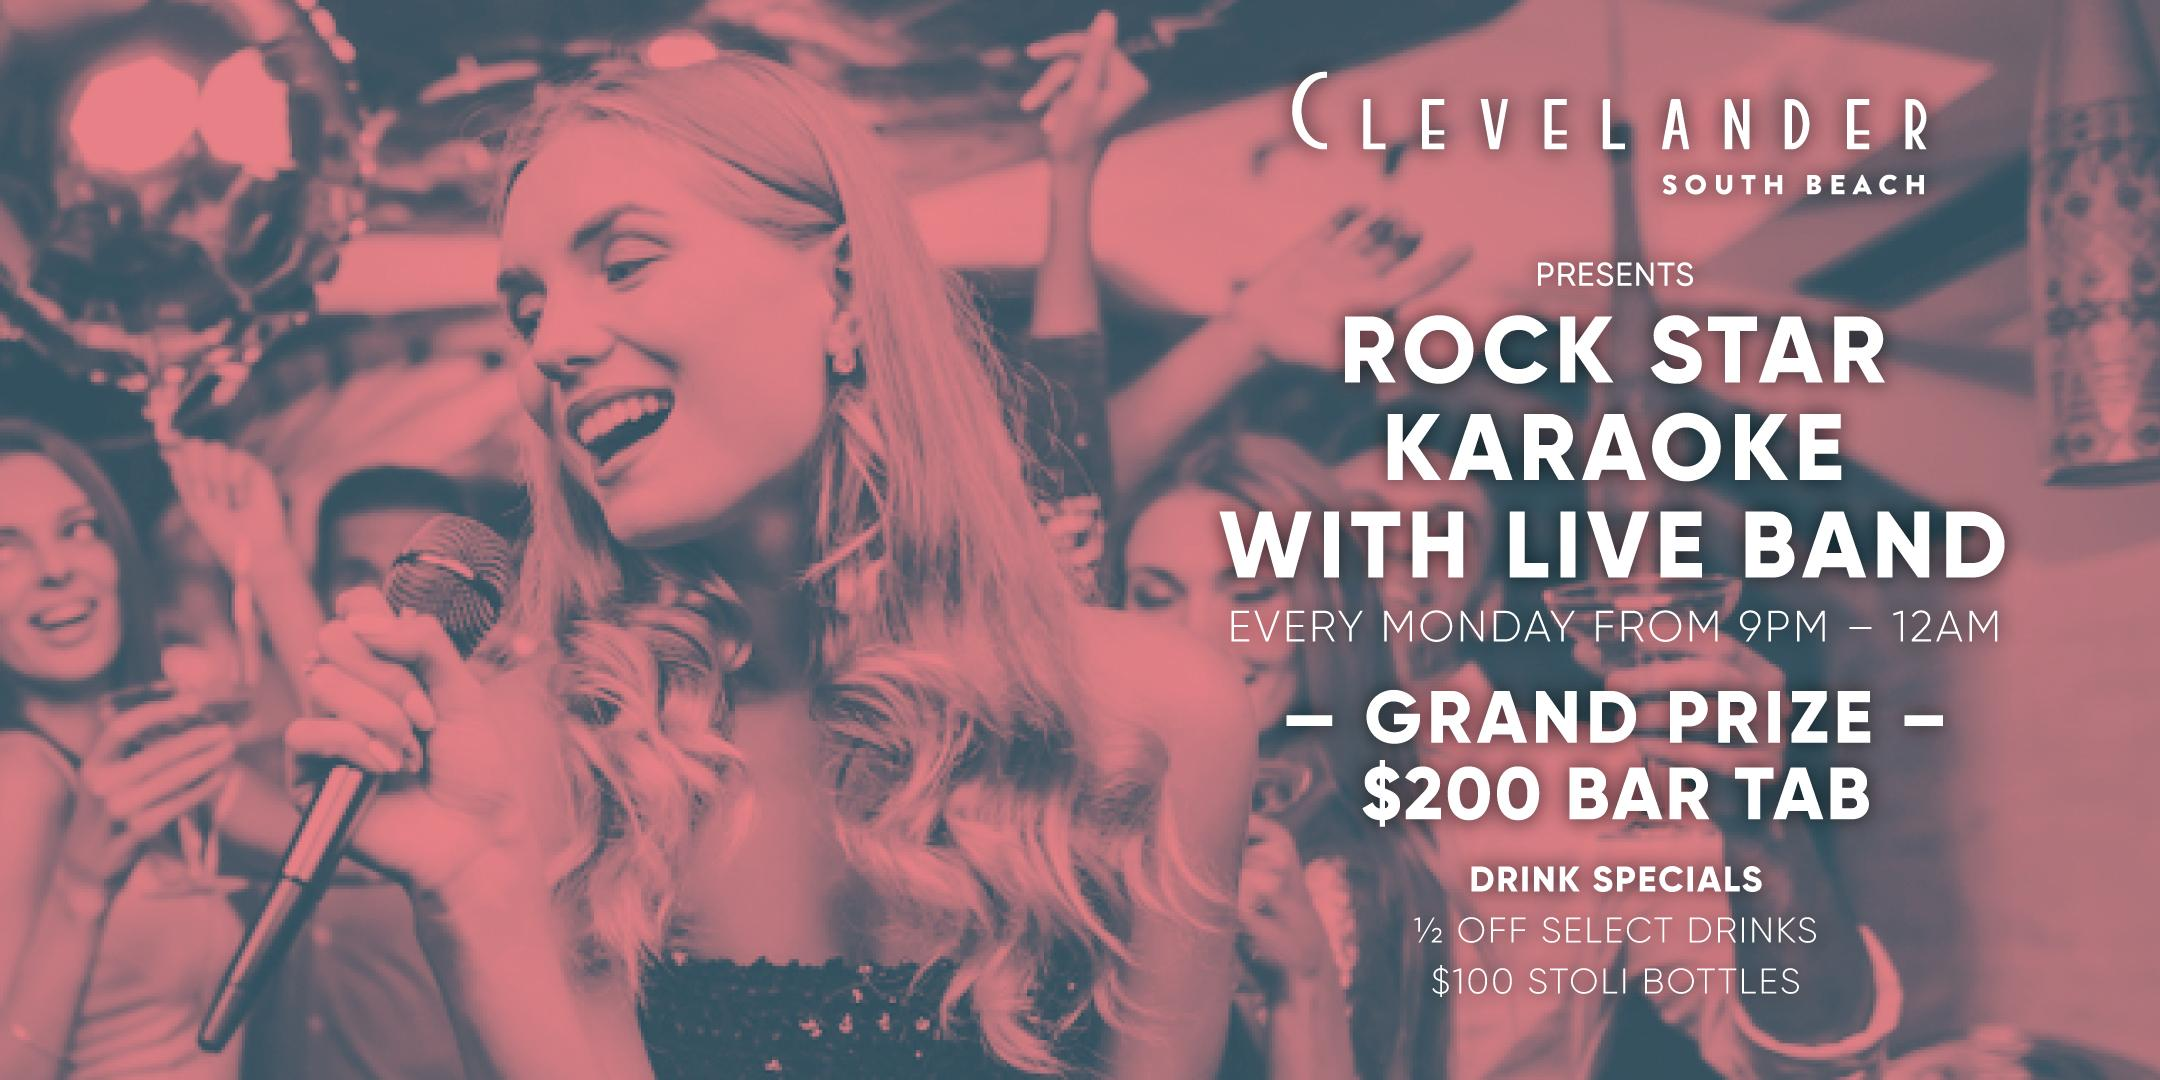 Rock Star Karaoke @ Clevelander South Beach Hotel and Bar, Mon 2/17 9:00pm